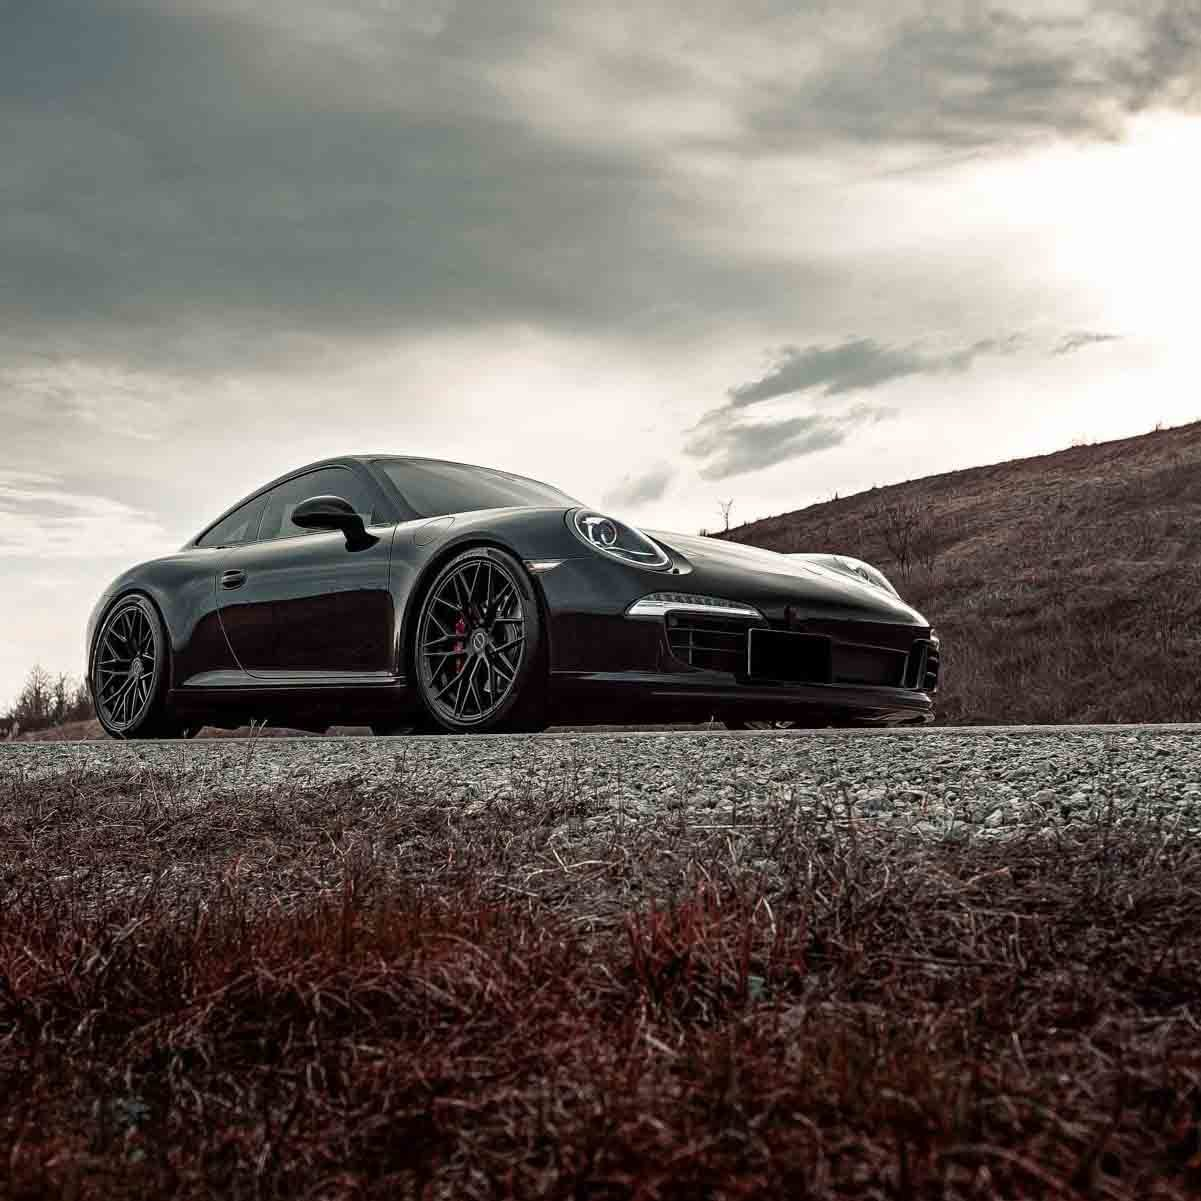 images-products-1-3011-232975299-black-porsche-991-c2s-brixton-forged-cm10-radial-forged-satin-black-6-1800x1201.jpg